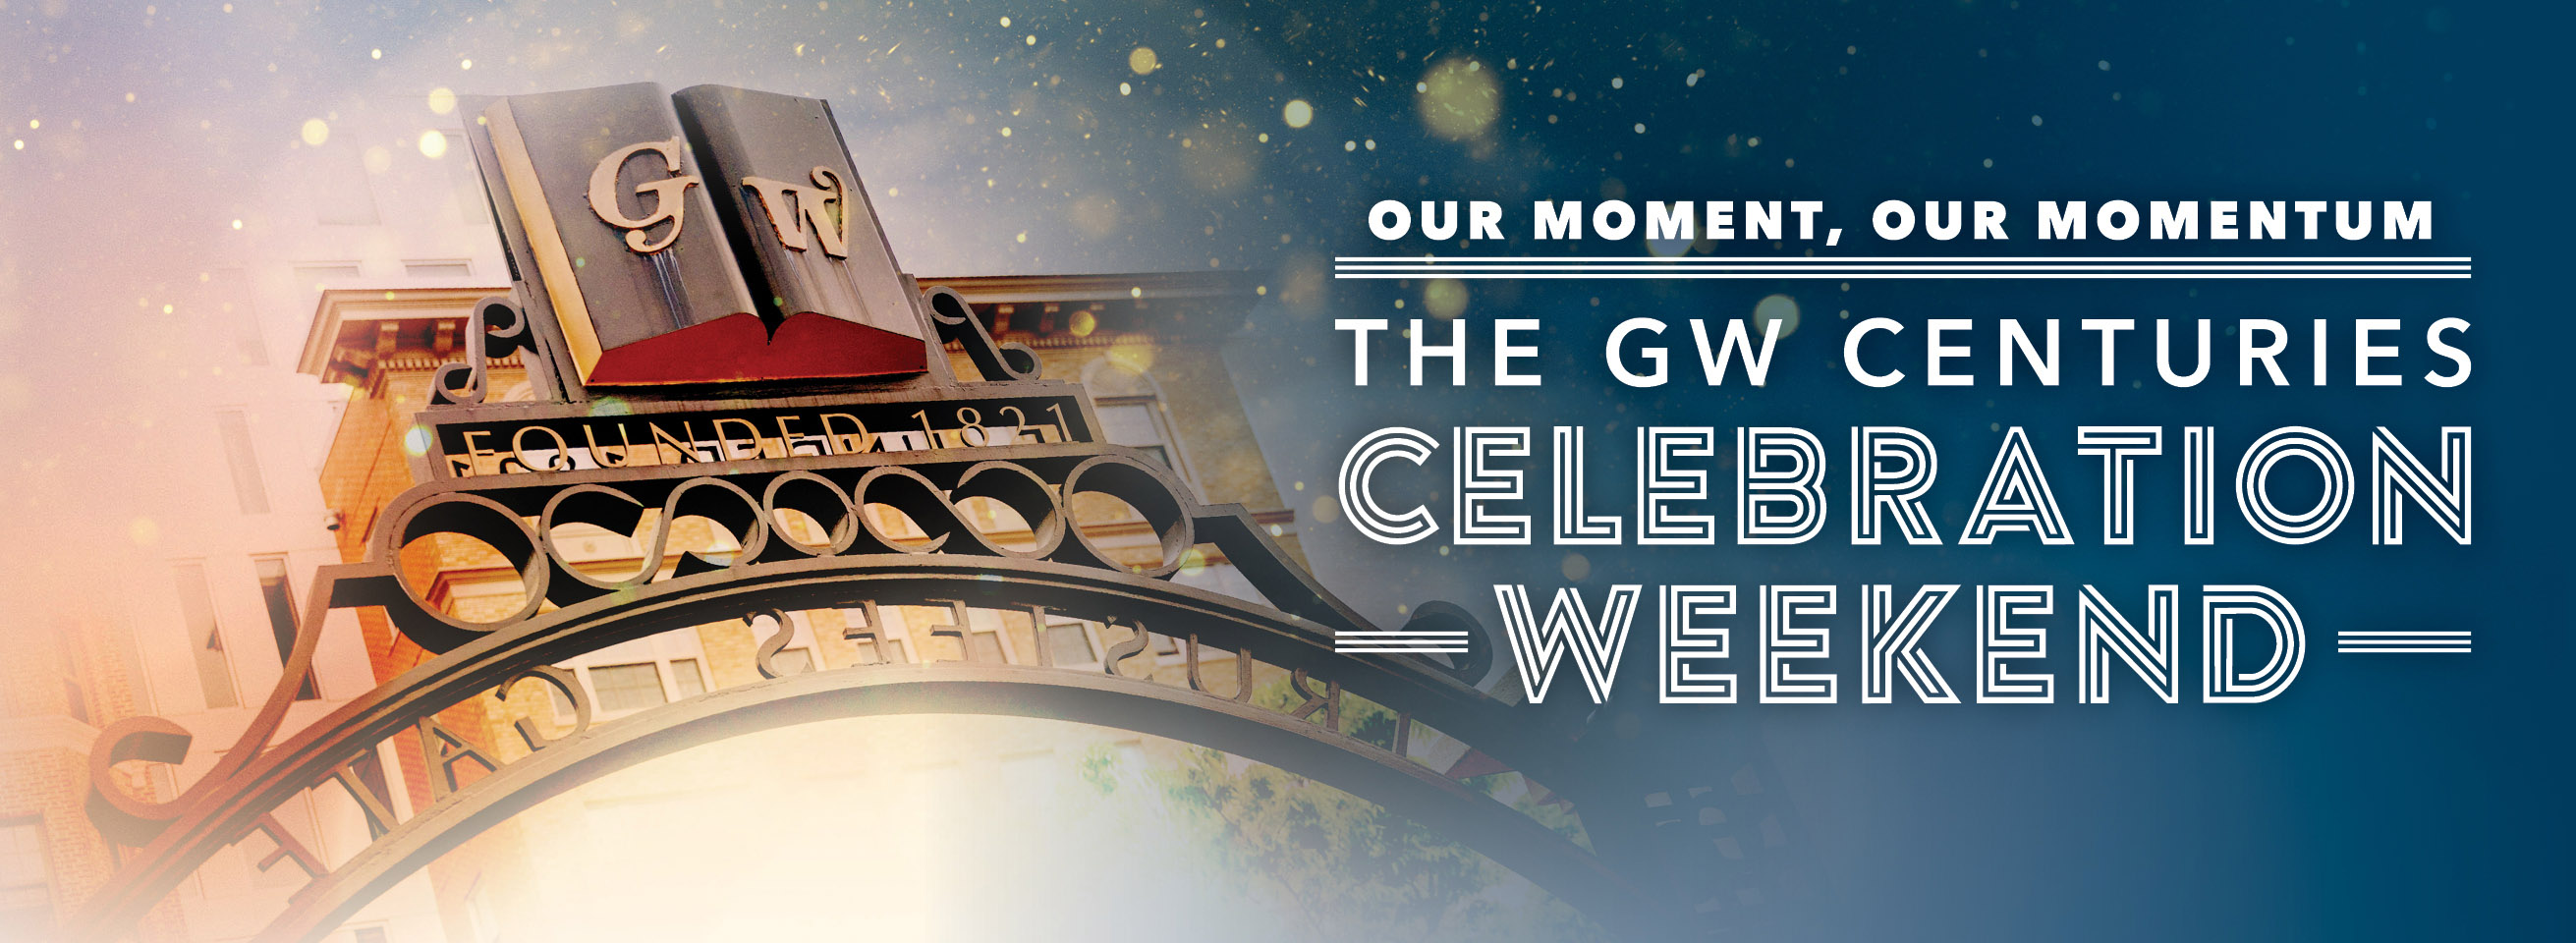 Our Momentum: The GW Centuries Celebration Weekend.